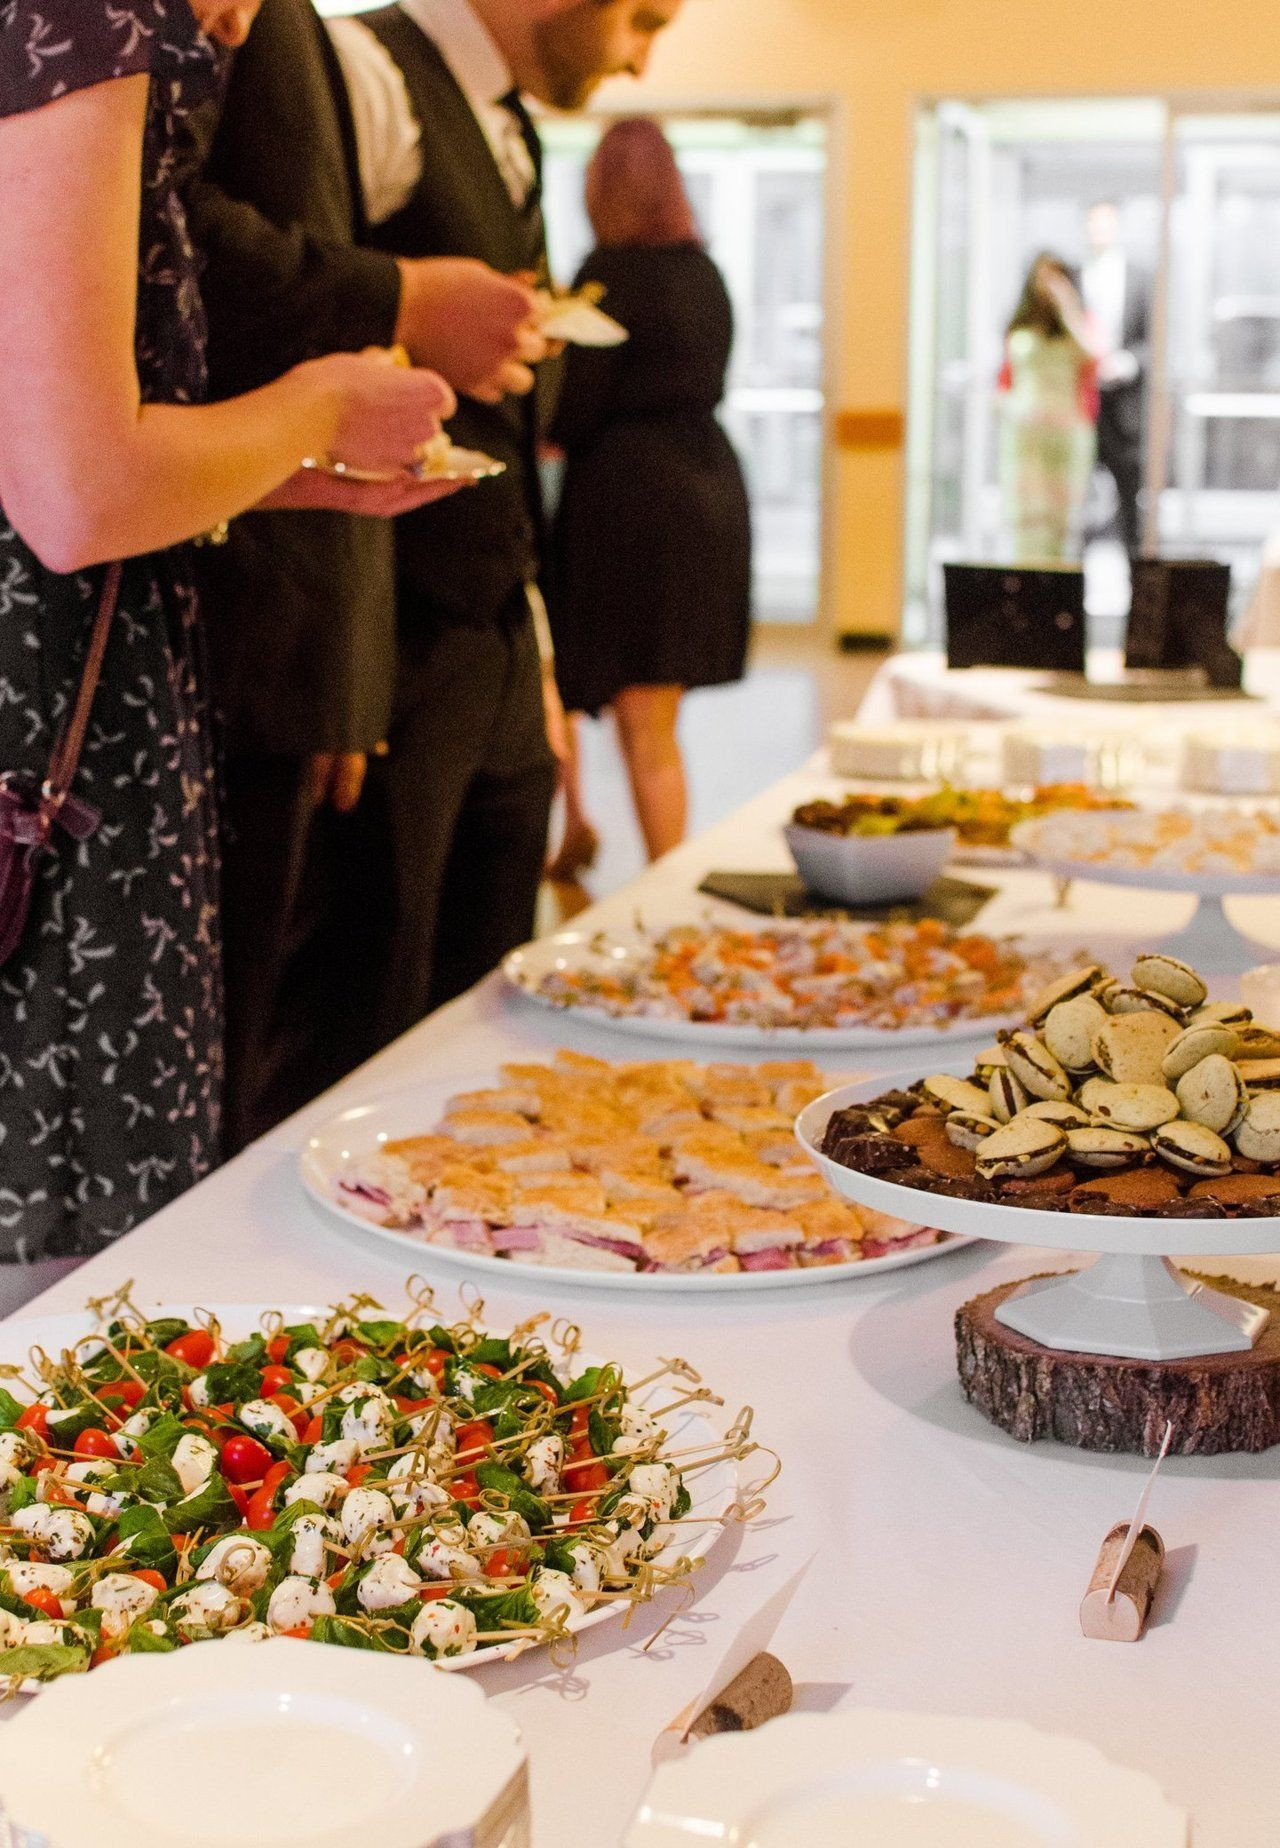 Best ideas about DIY Wedding Catering . Save or Pin A DIY Wedding Reception for 200 Food Appetizers Now.